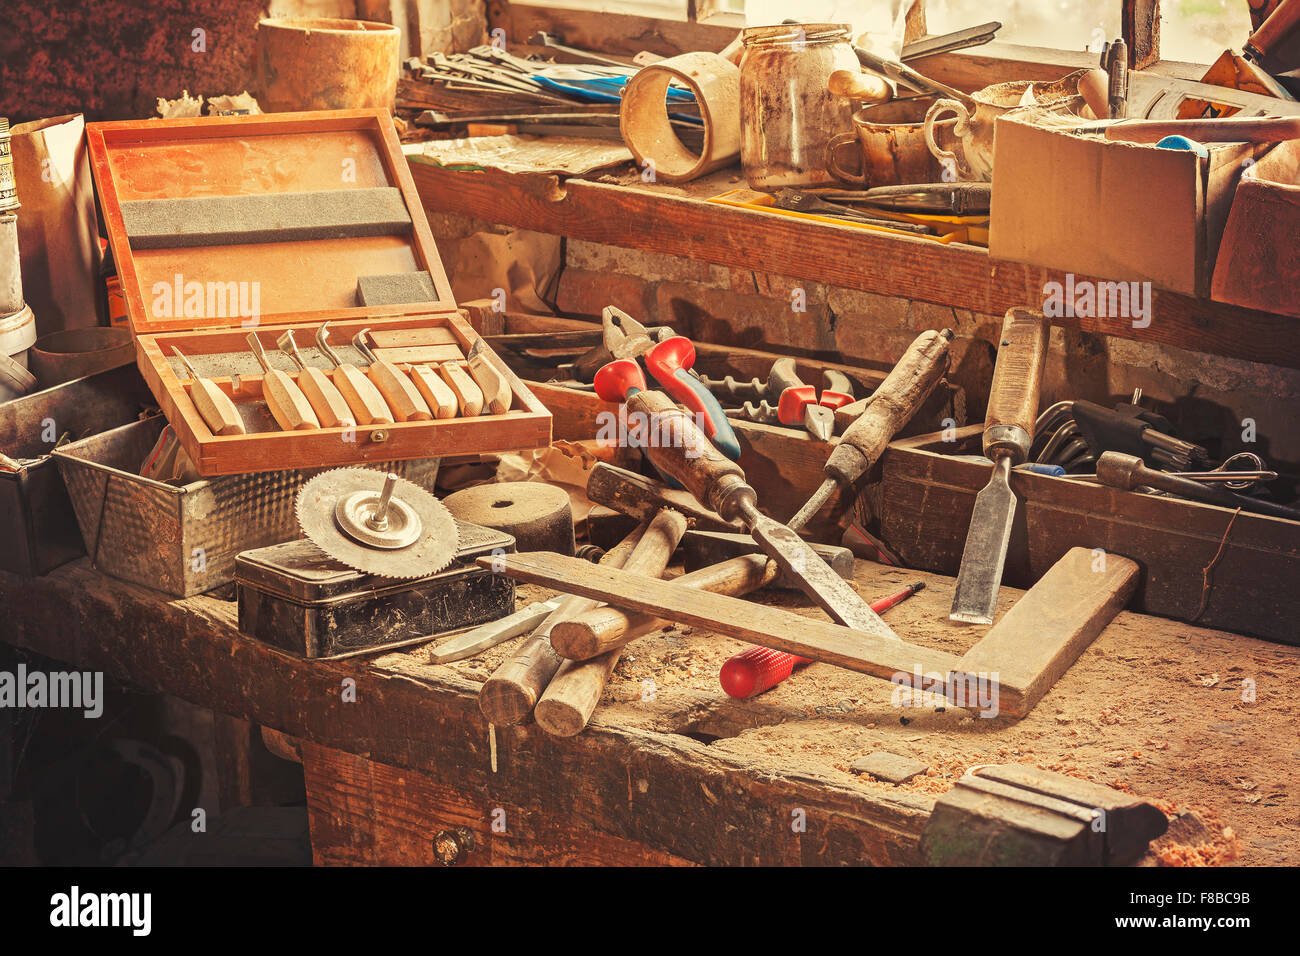 Retro stylized old tools on wooden table in a joinery. - Stock Image